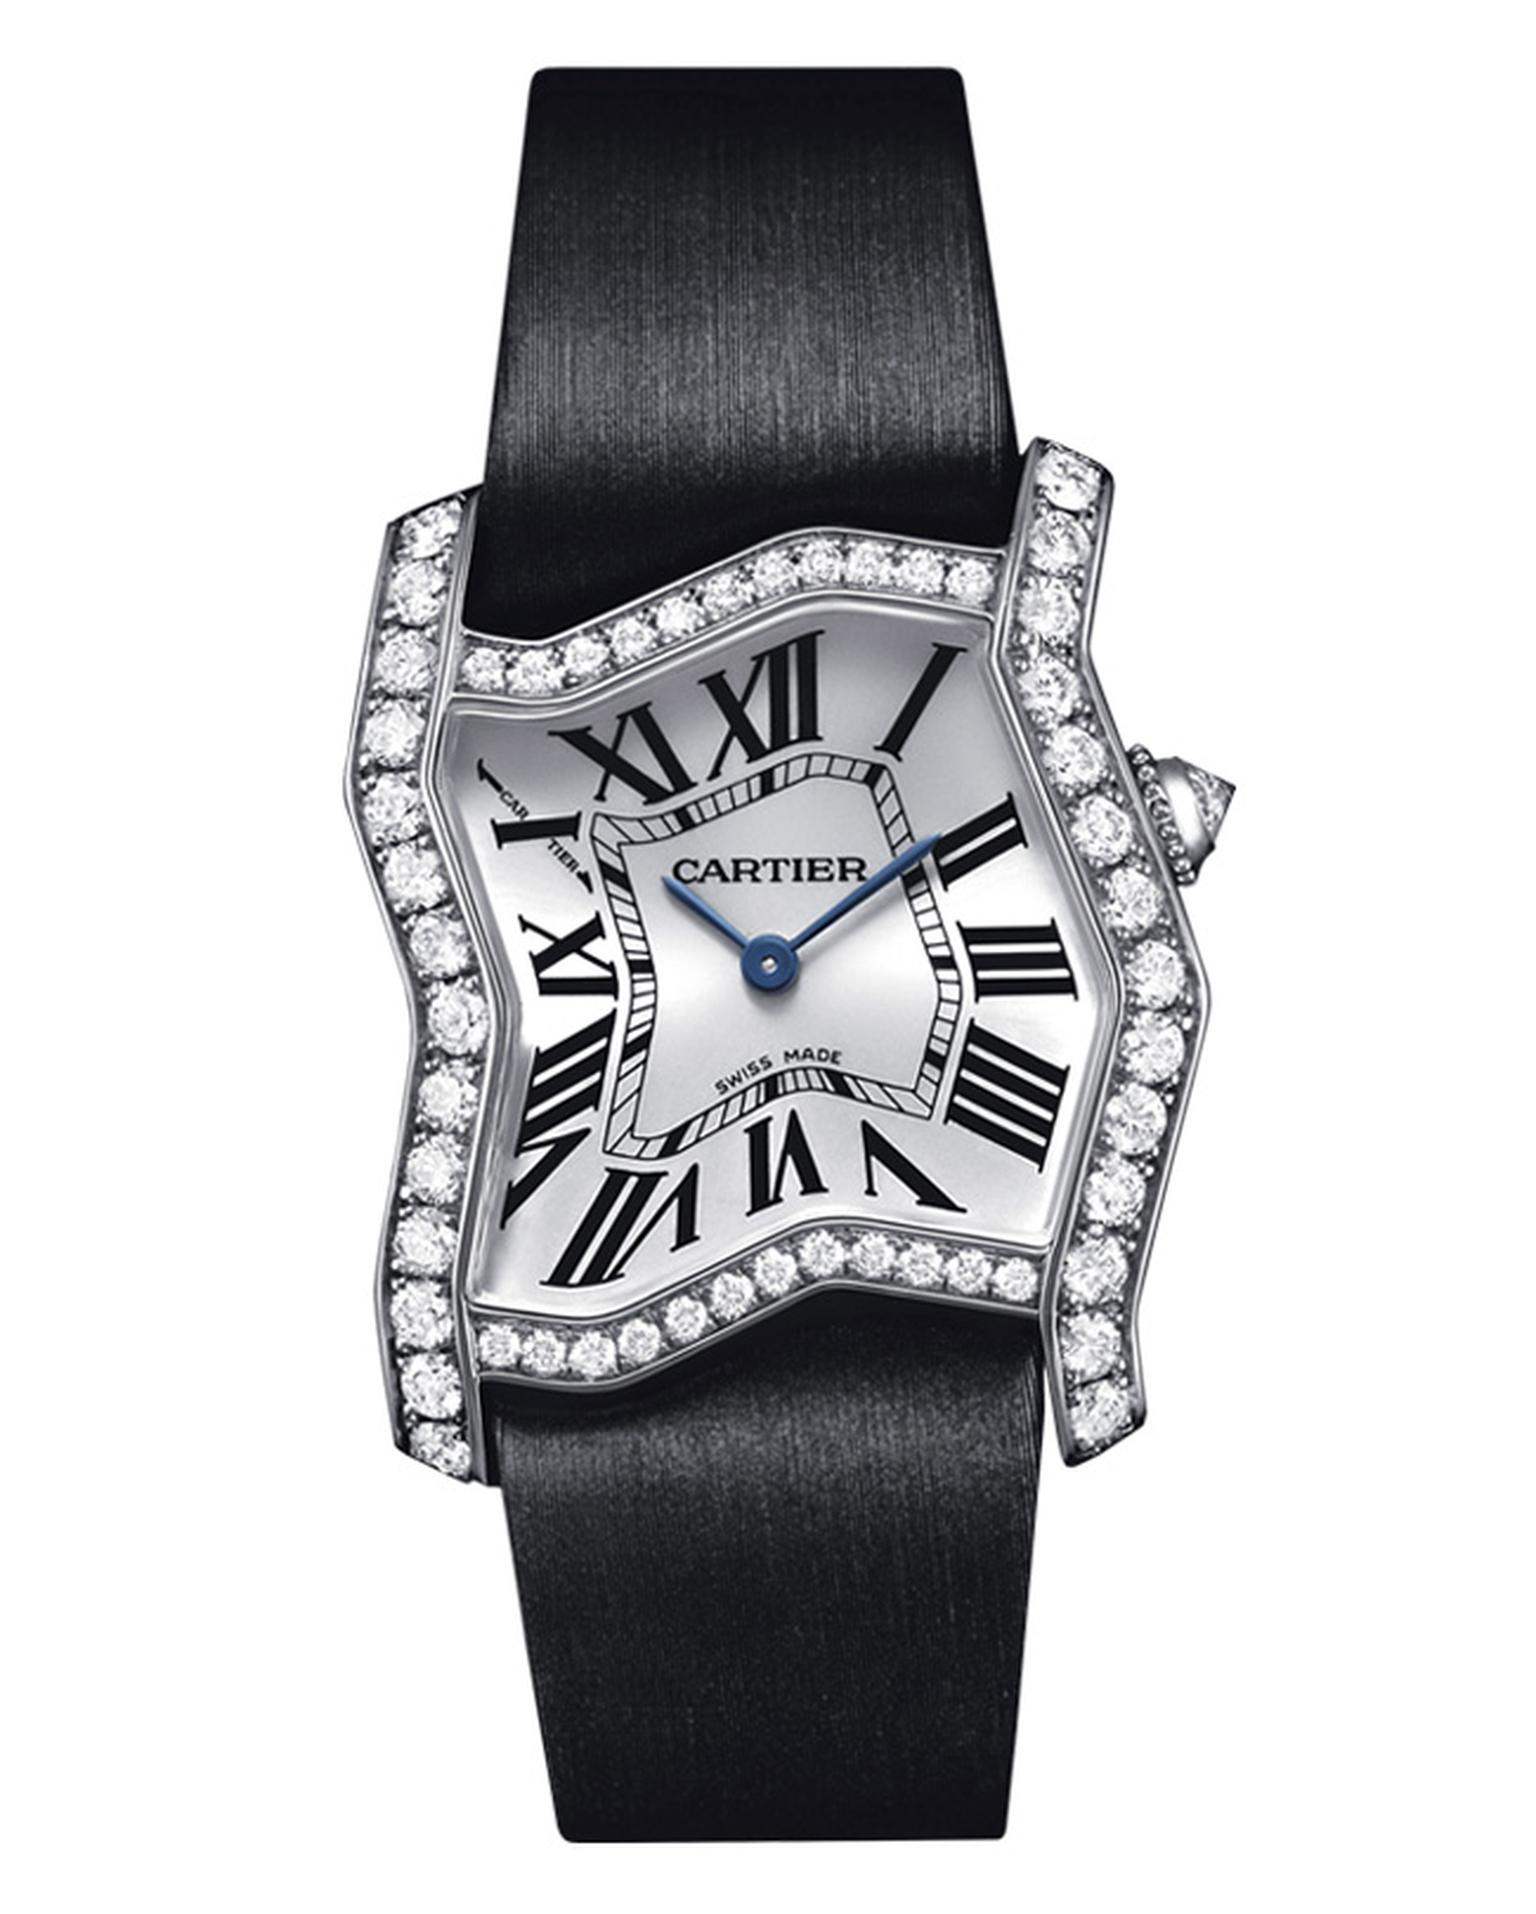 Cartier Tank Folle watch in white gold and diamonds_20130404_Main